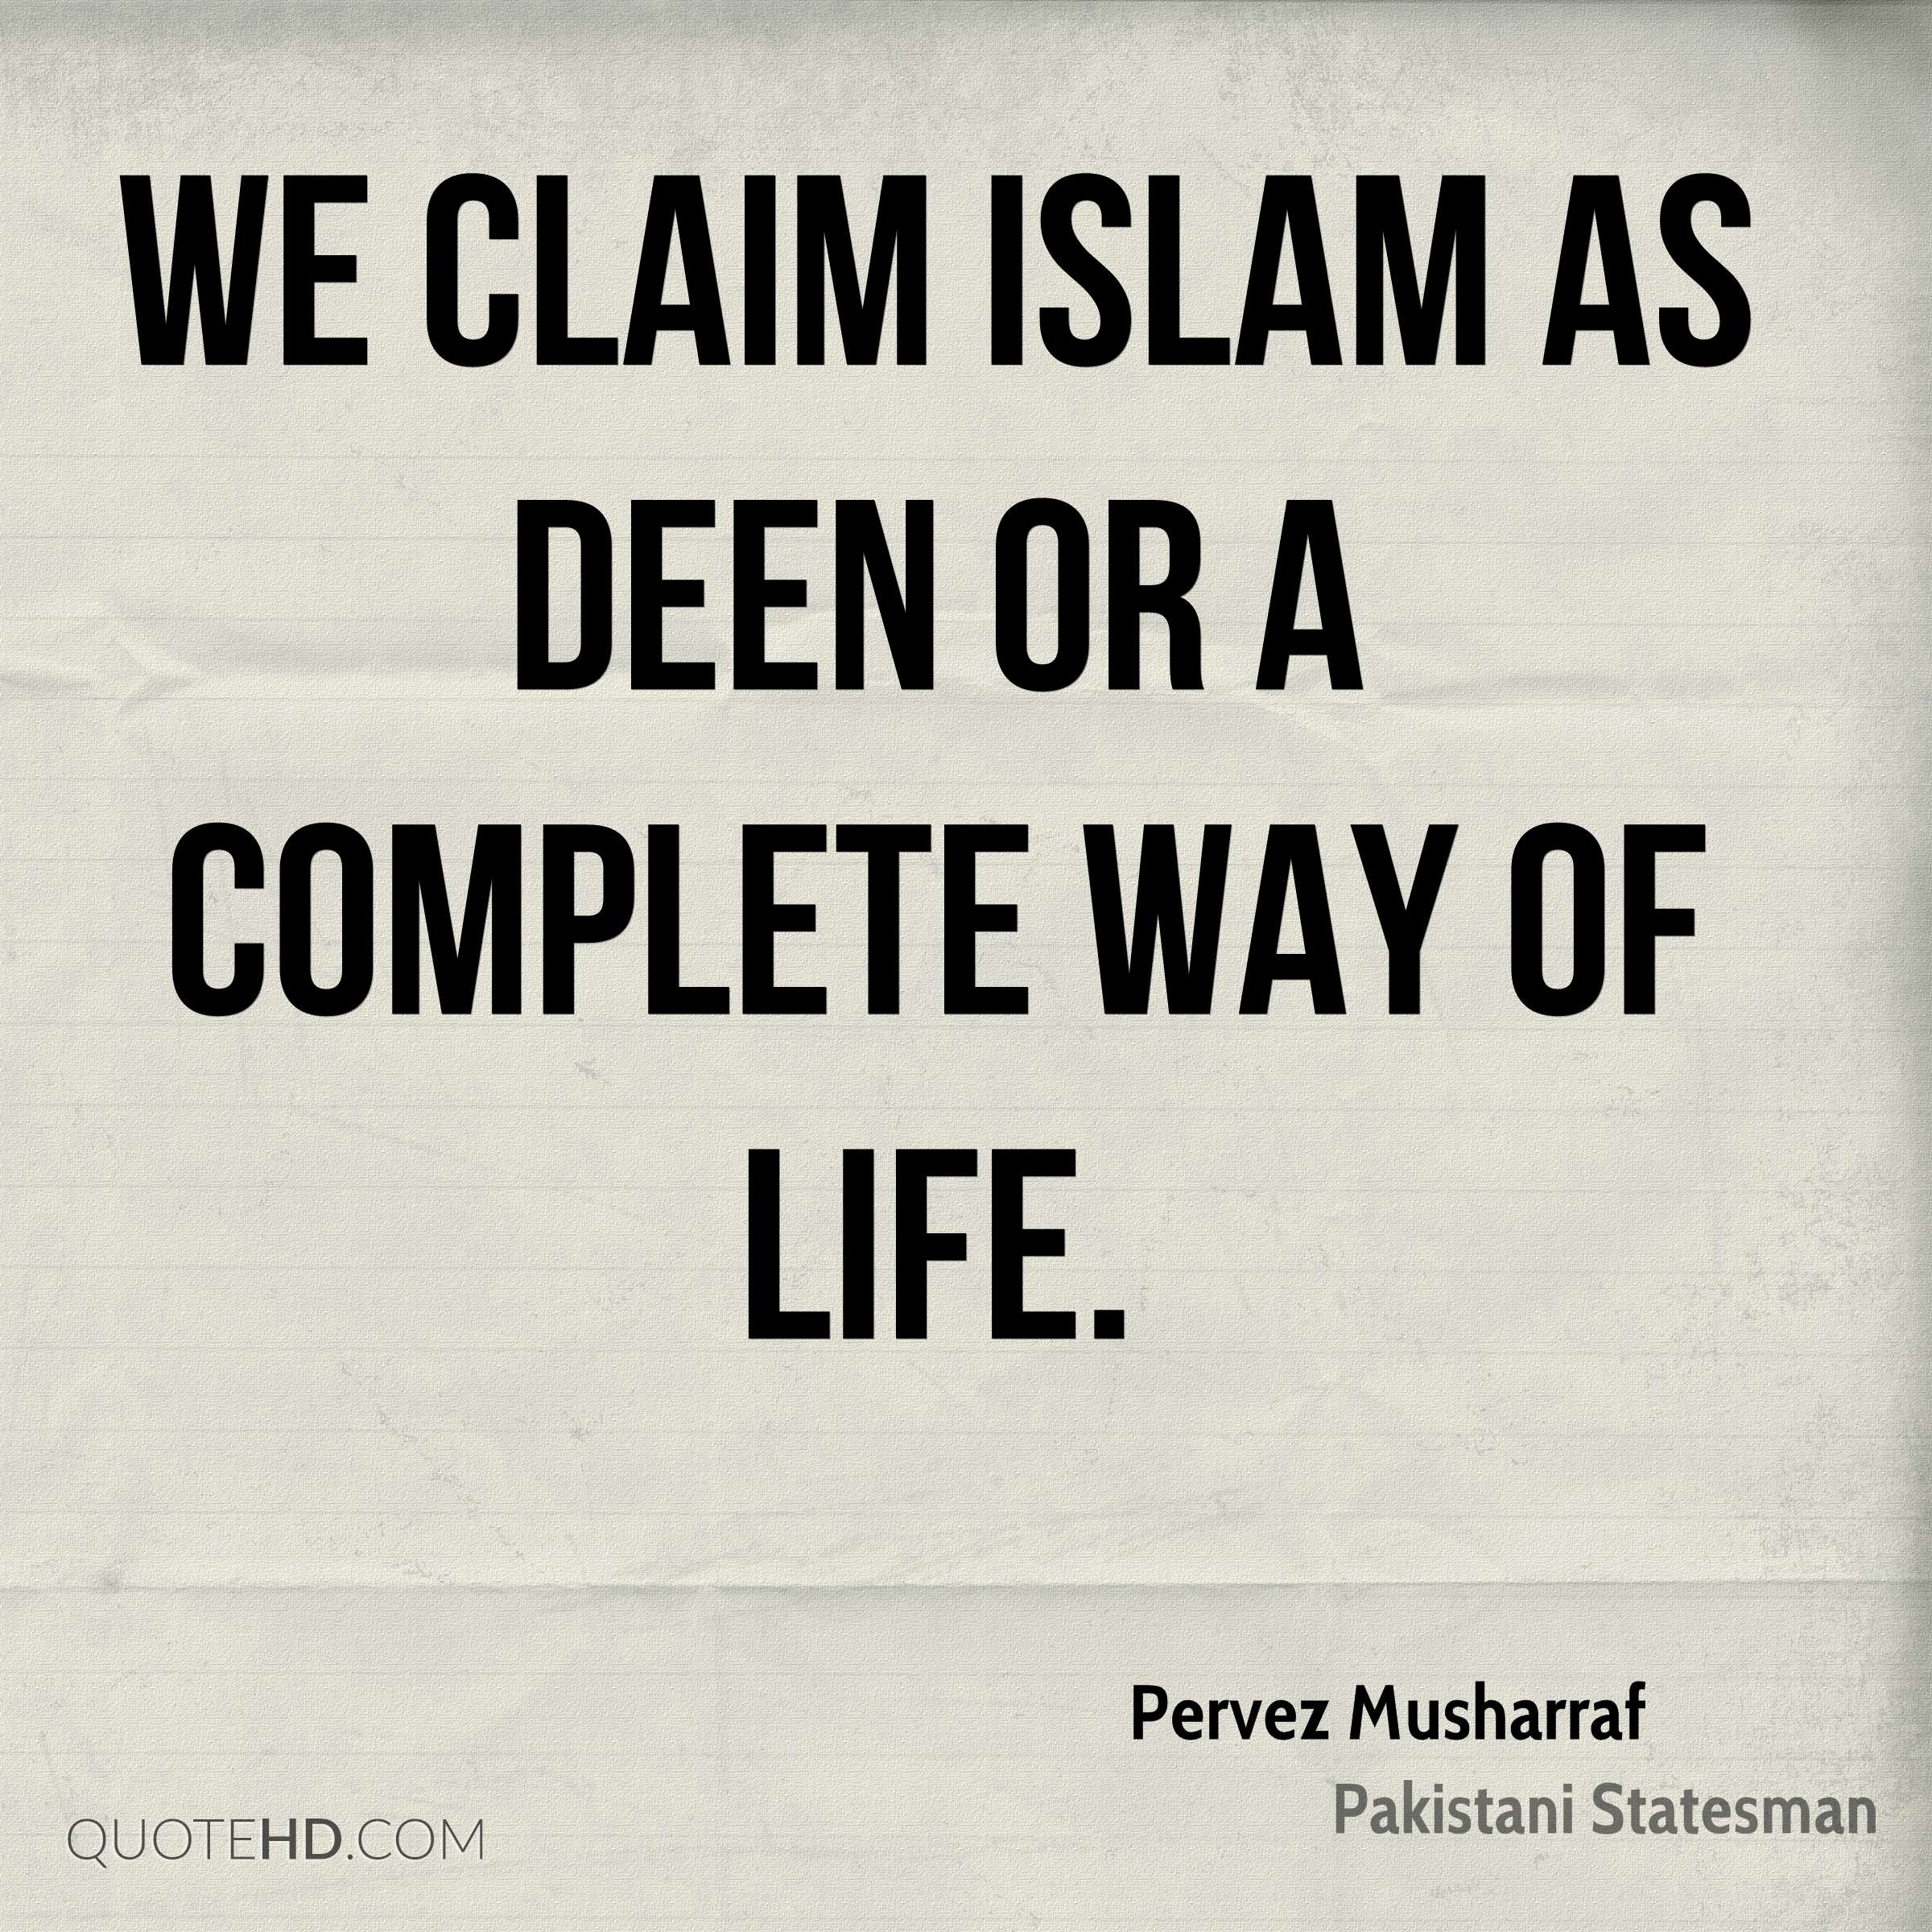 We claim Islam as Deen or a complete way of life.